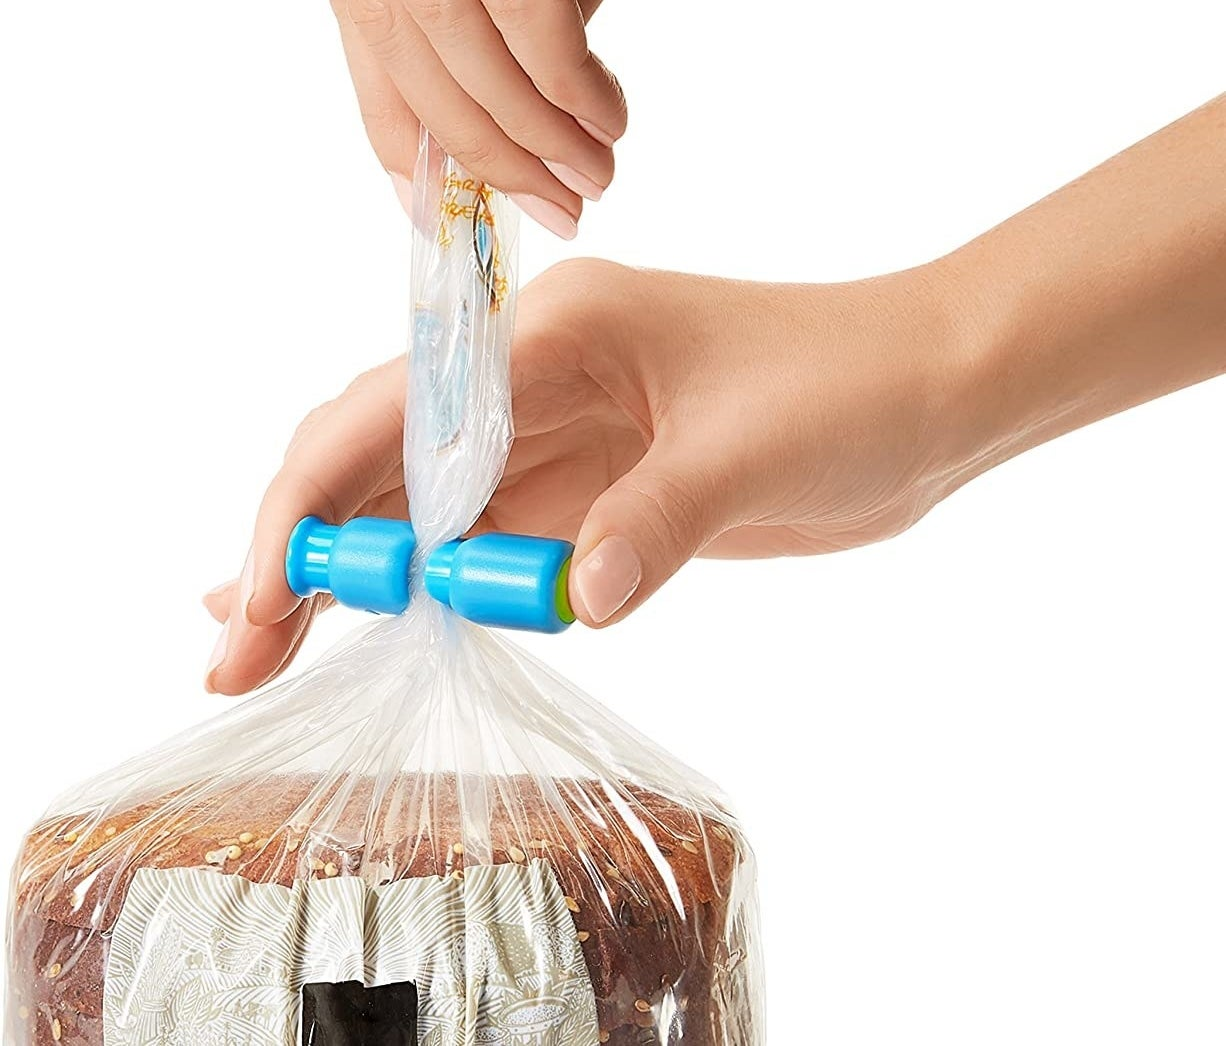 A person sealing a bag of bread with a plastic toggle